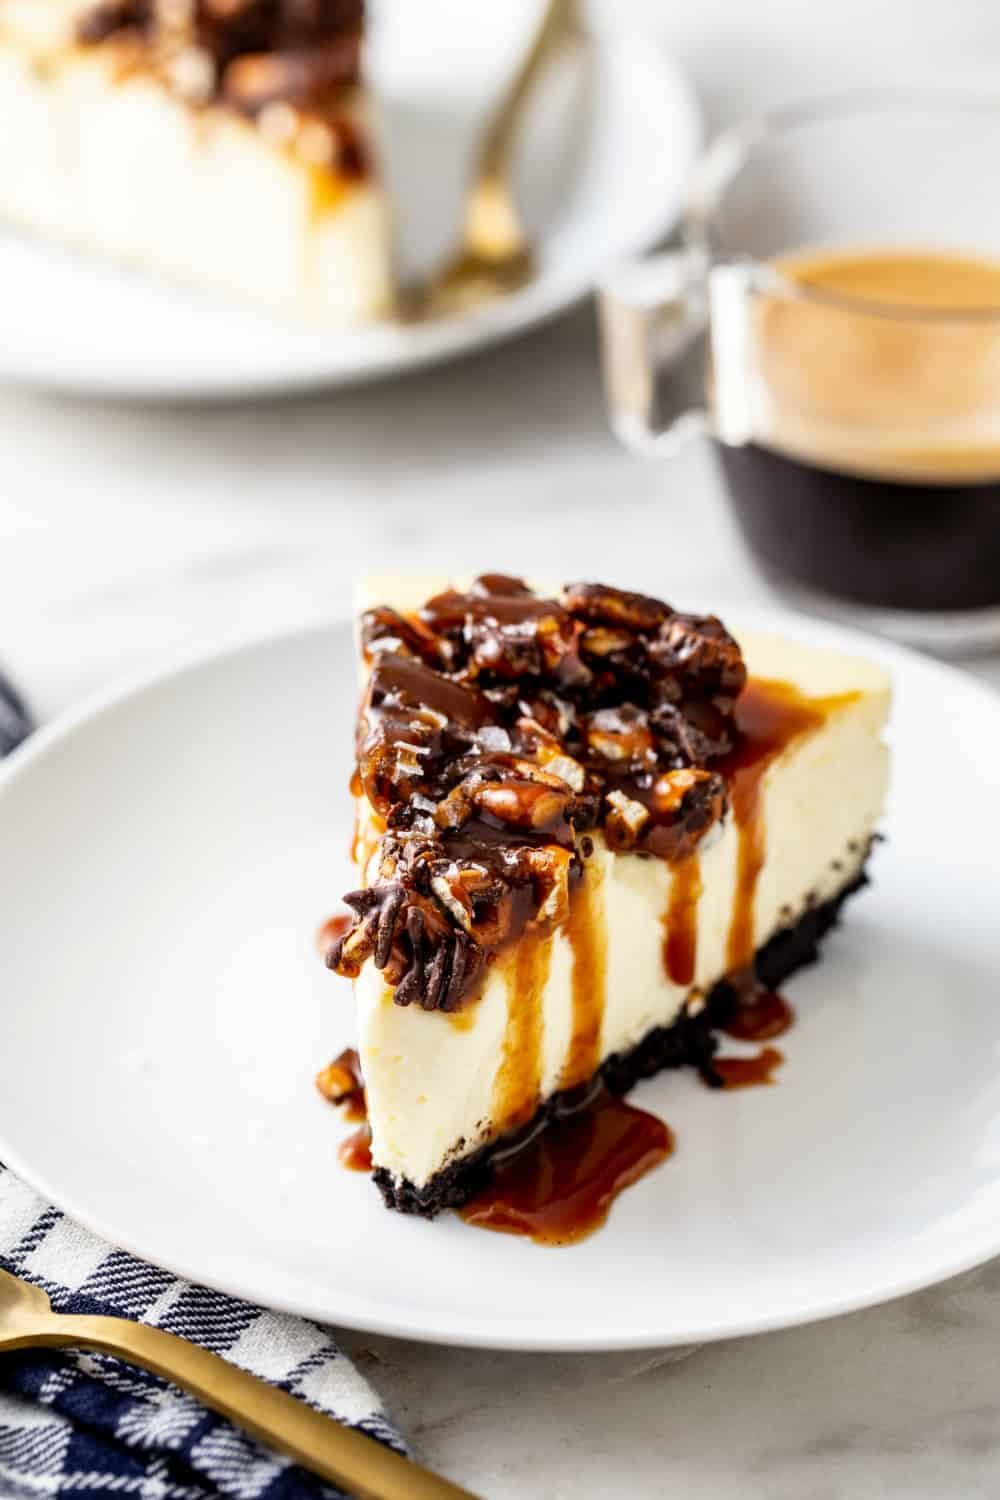 Slice of sweet and salty cheesecake and a cup of espresso